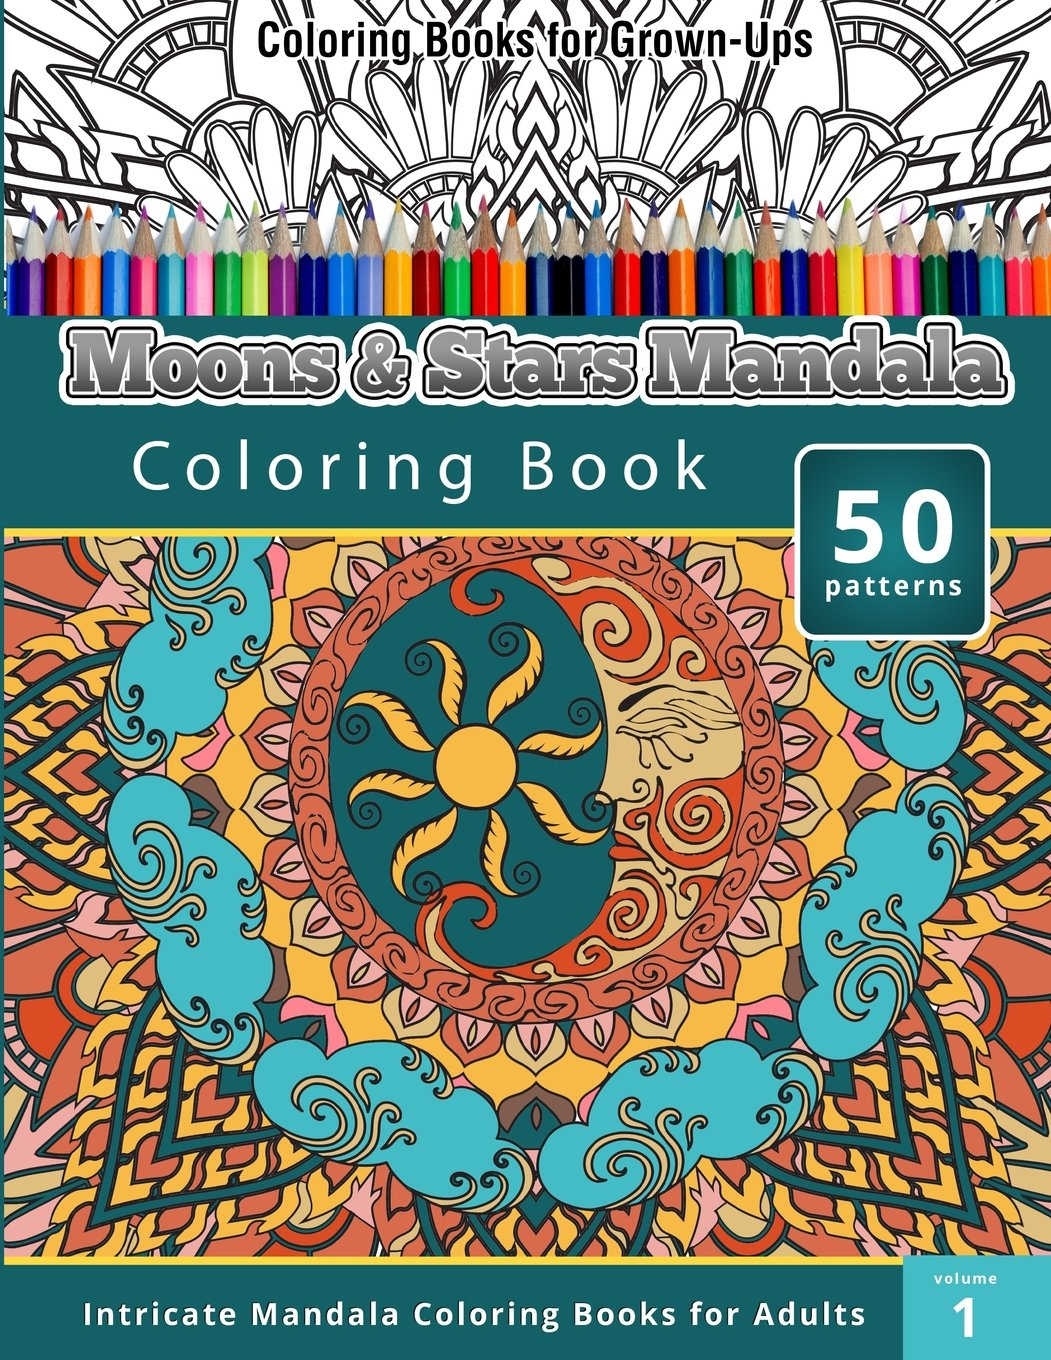 amazoncom coloring book for grown ups moons stars mandala coloring book 9781508811787 chiquita publishing books